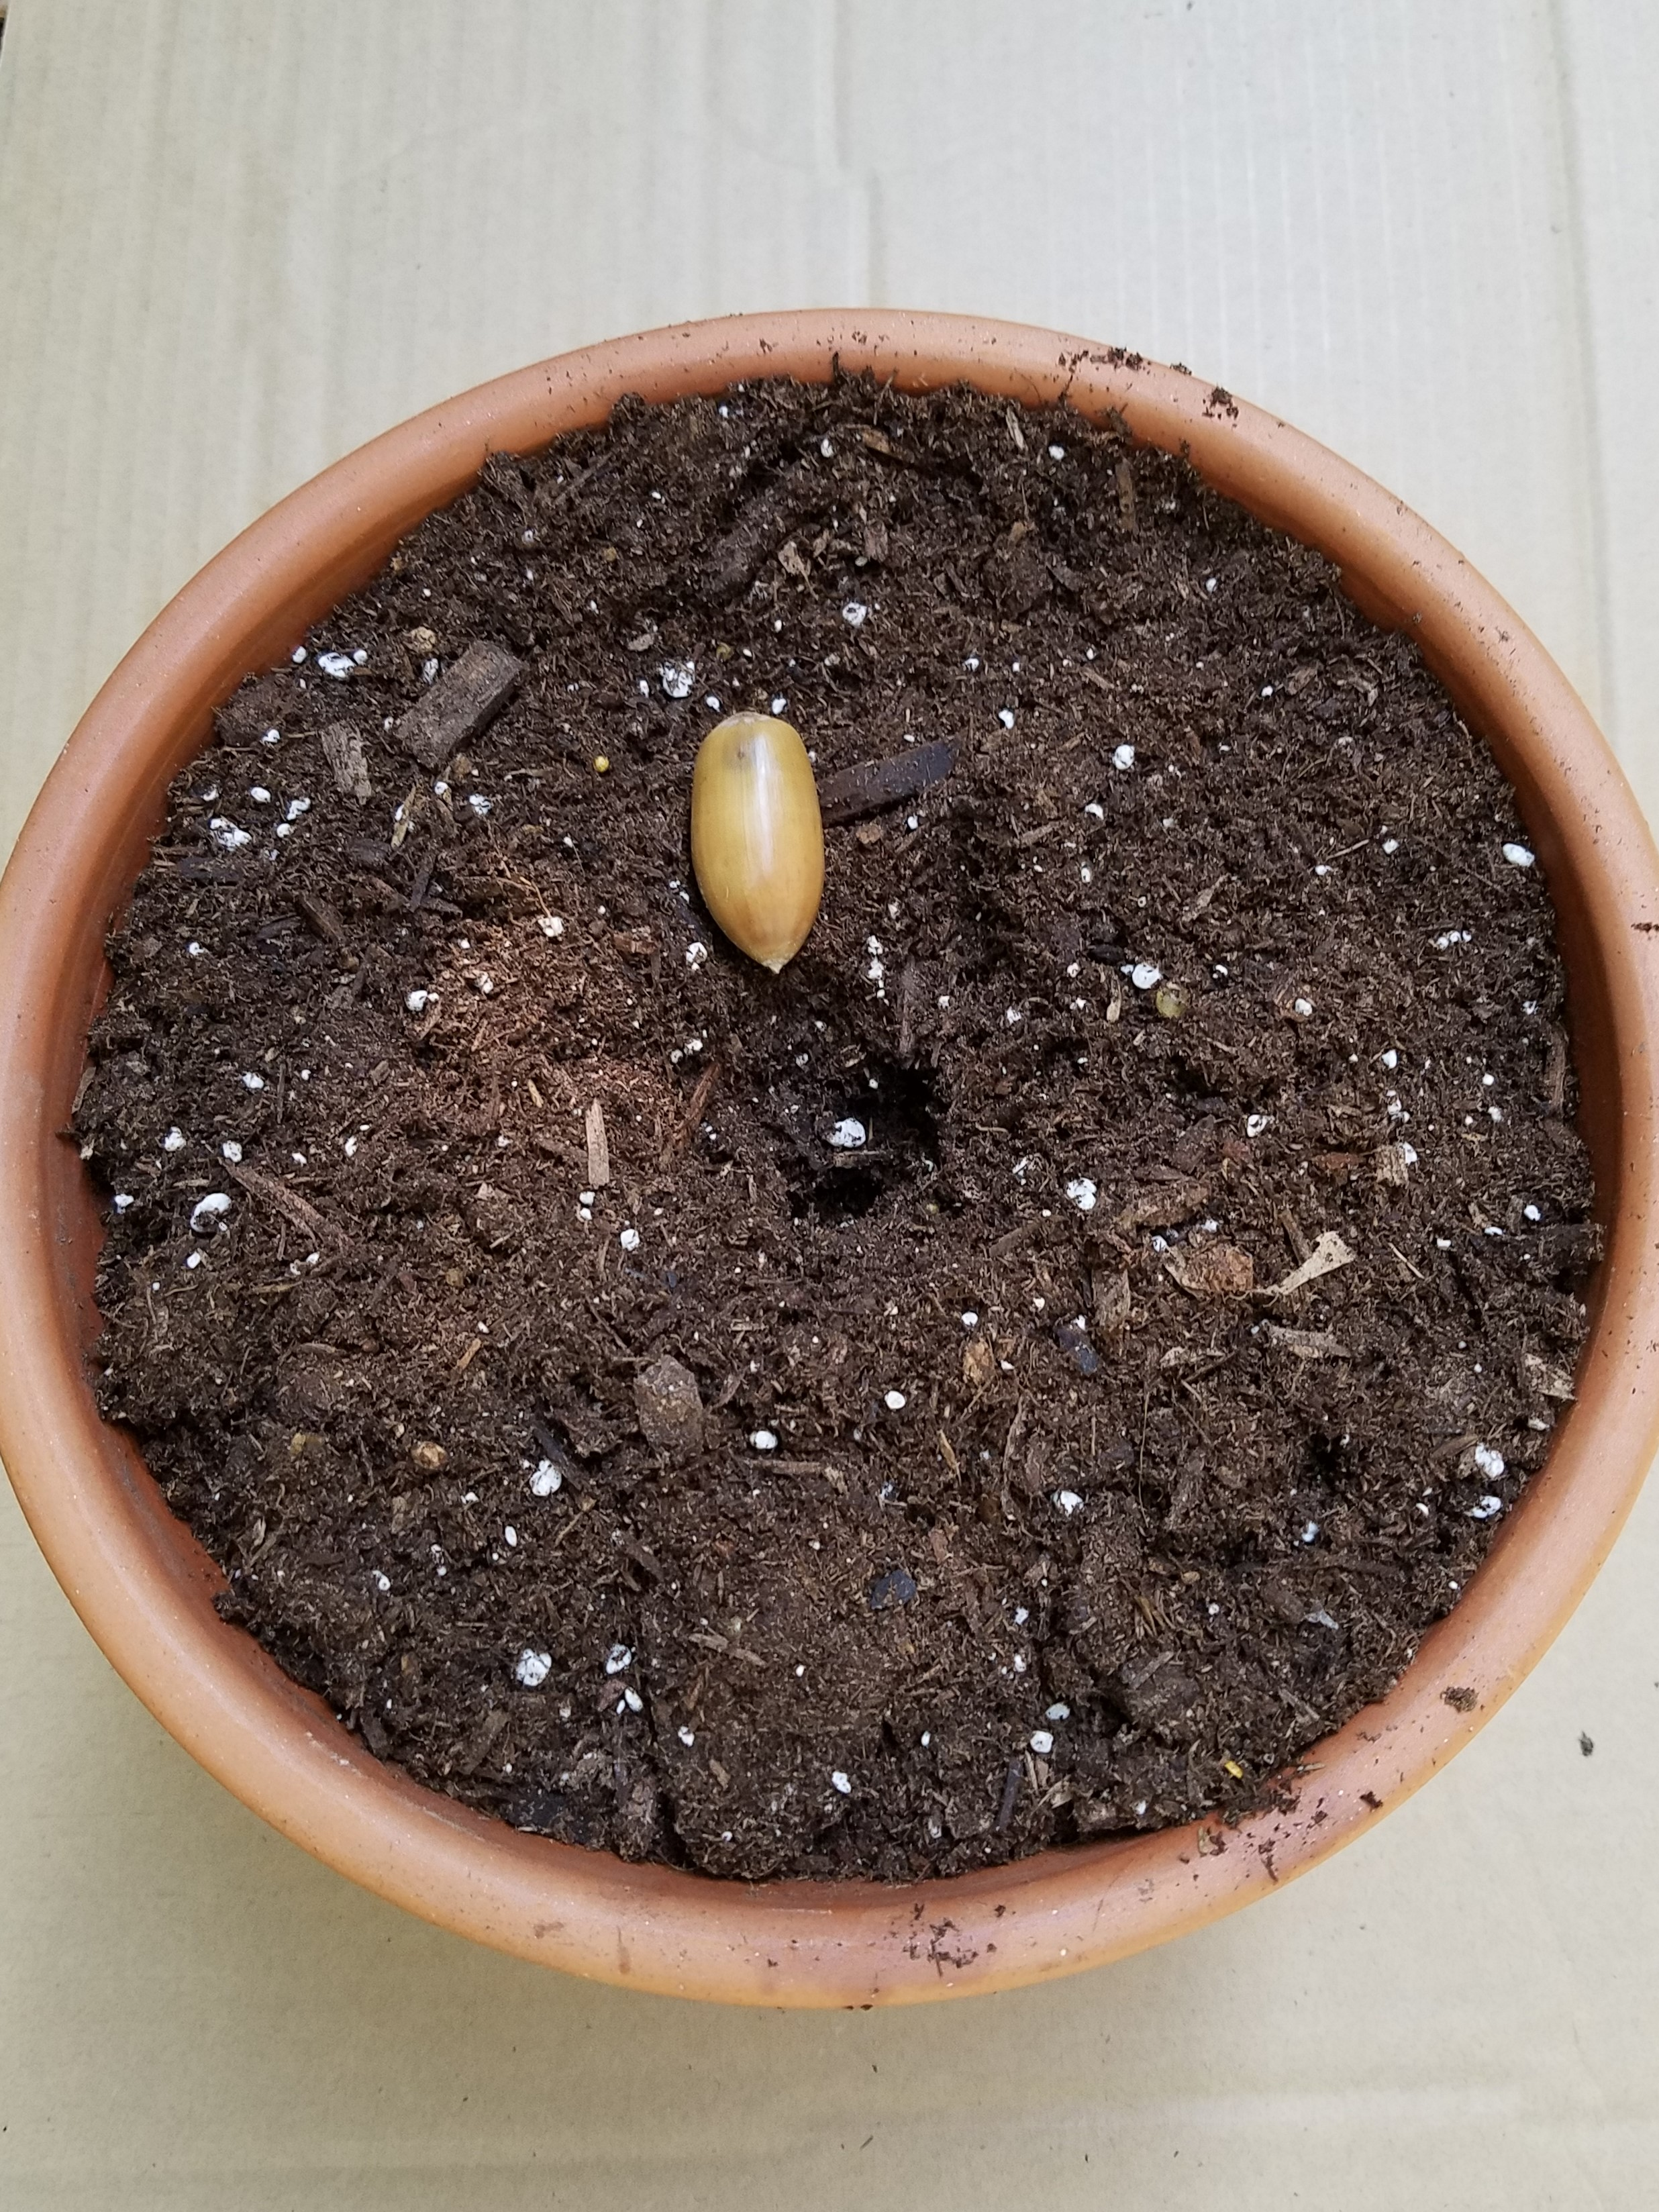 The depth of a seed planted in soil matters. If it's not specified in planting directions, plant the seed in twice the depth of the size of the seed. - This California Live Oak acorn is about an inch long, so will have to be buried in a 2 inch deep hole.